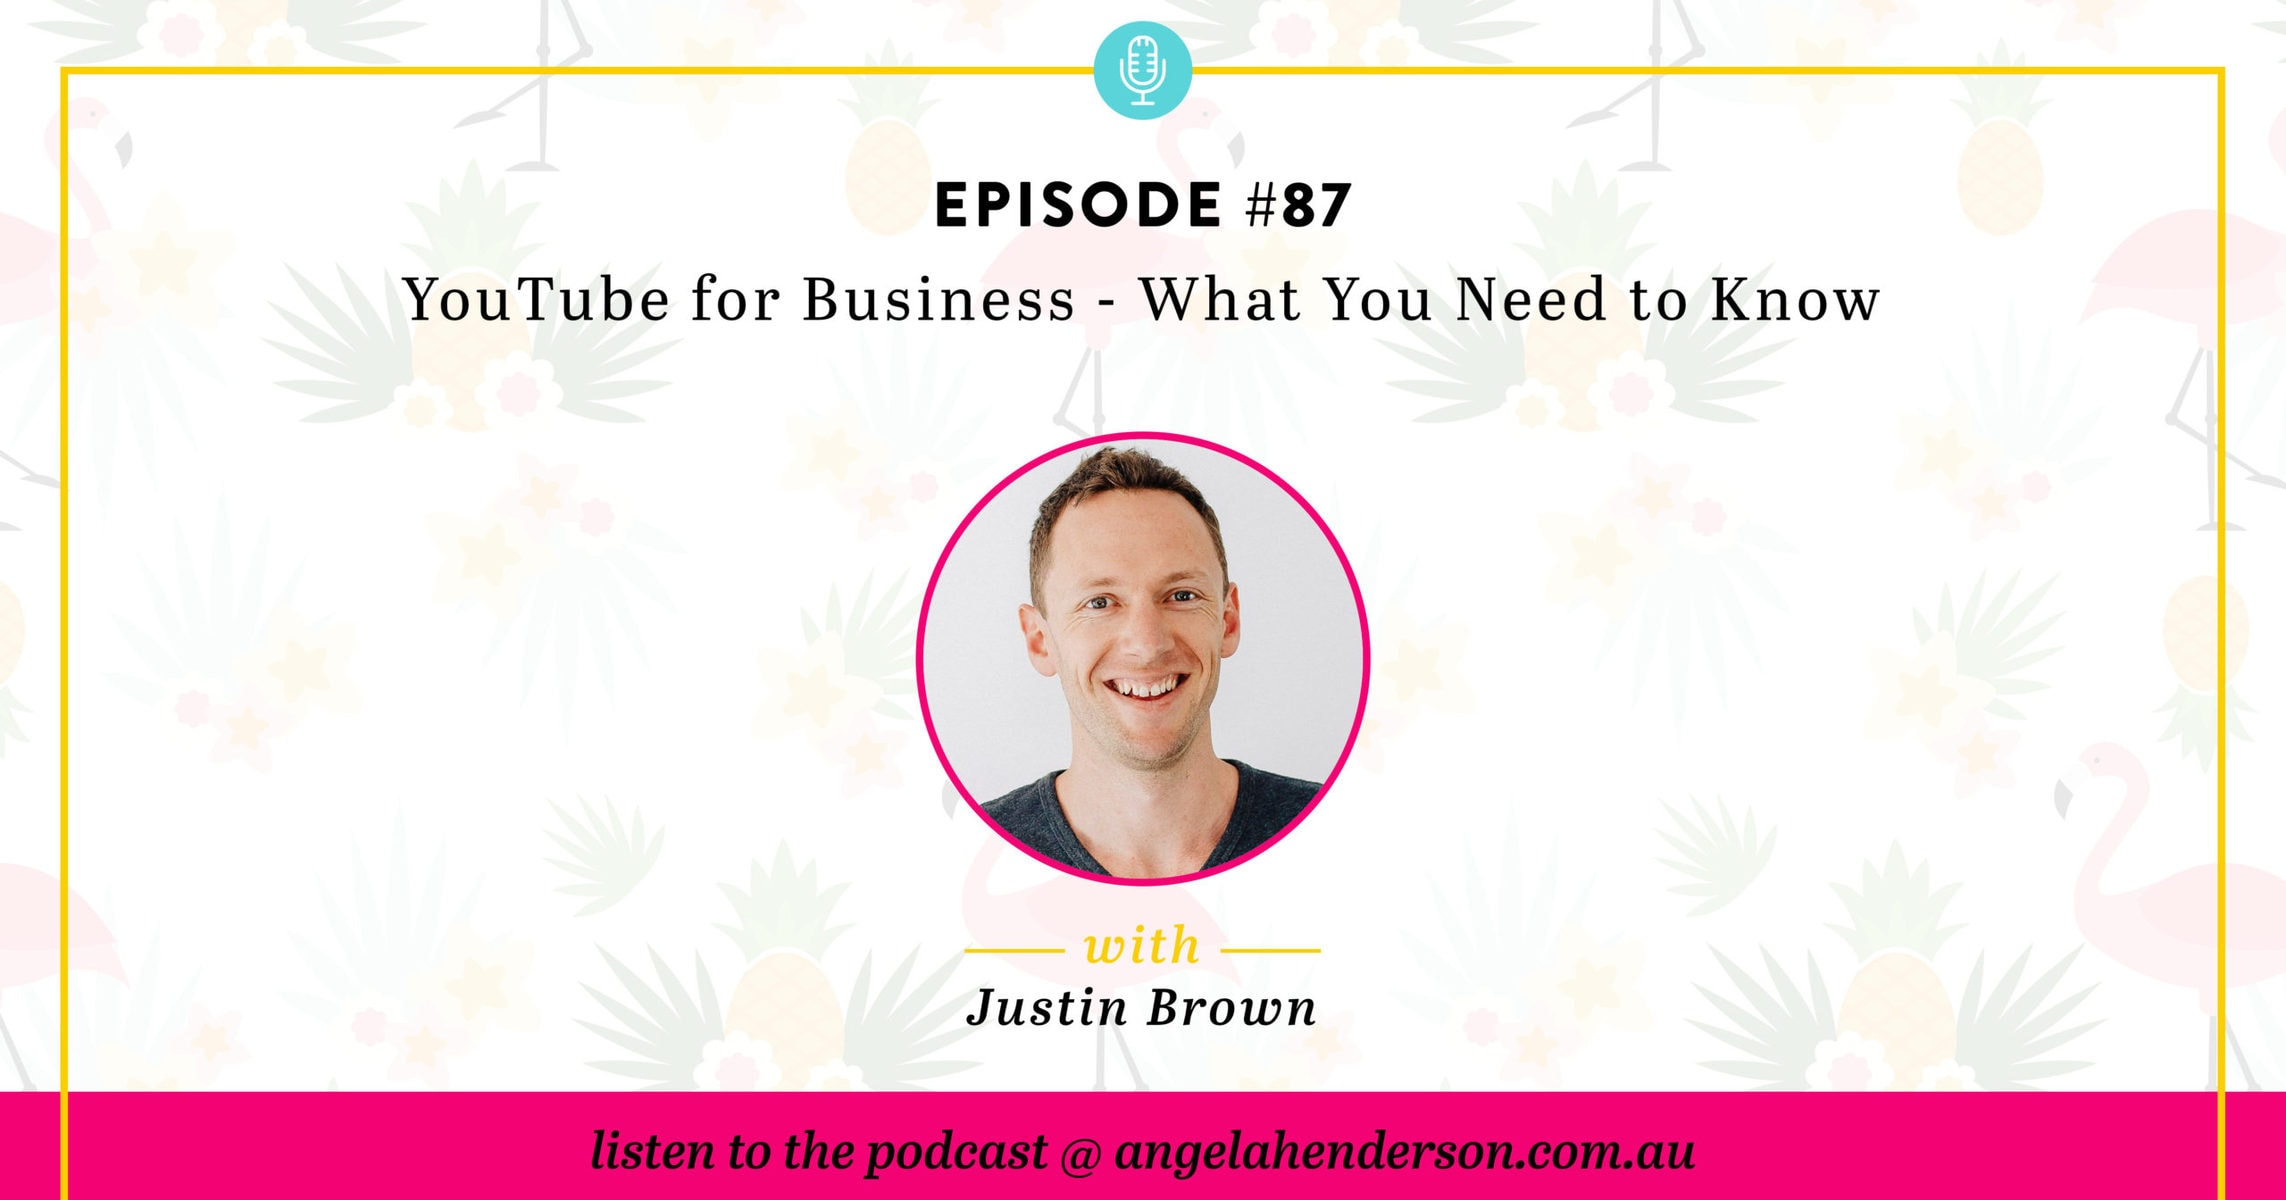 YouTube for Business